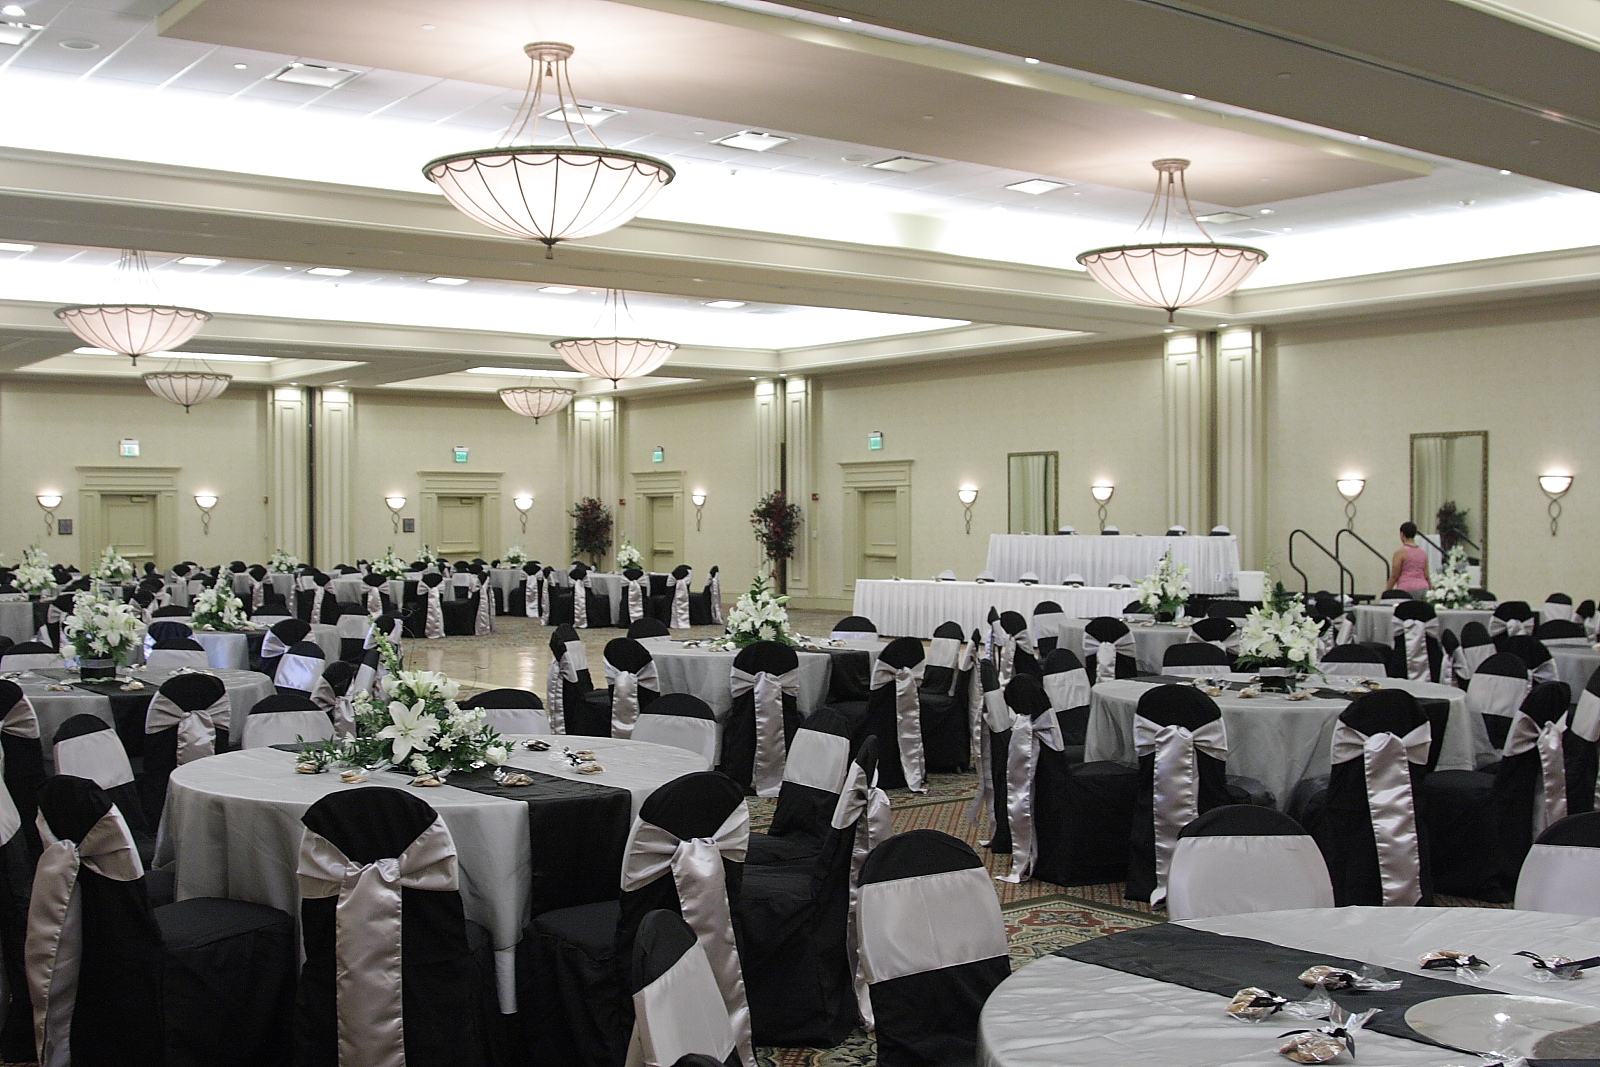 Here Is A Shot After I Set Up The Reception Hall At The Hilton Garden Inn  Suffolk, VA. Congrats Shaun And Charese Josie!...May Your Marriage Be As  Sleek As ...